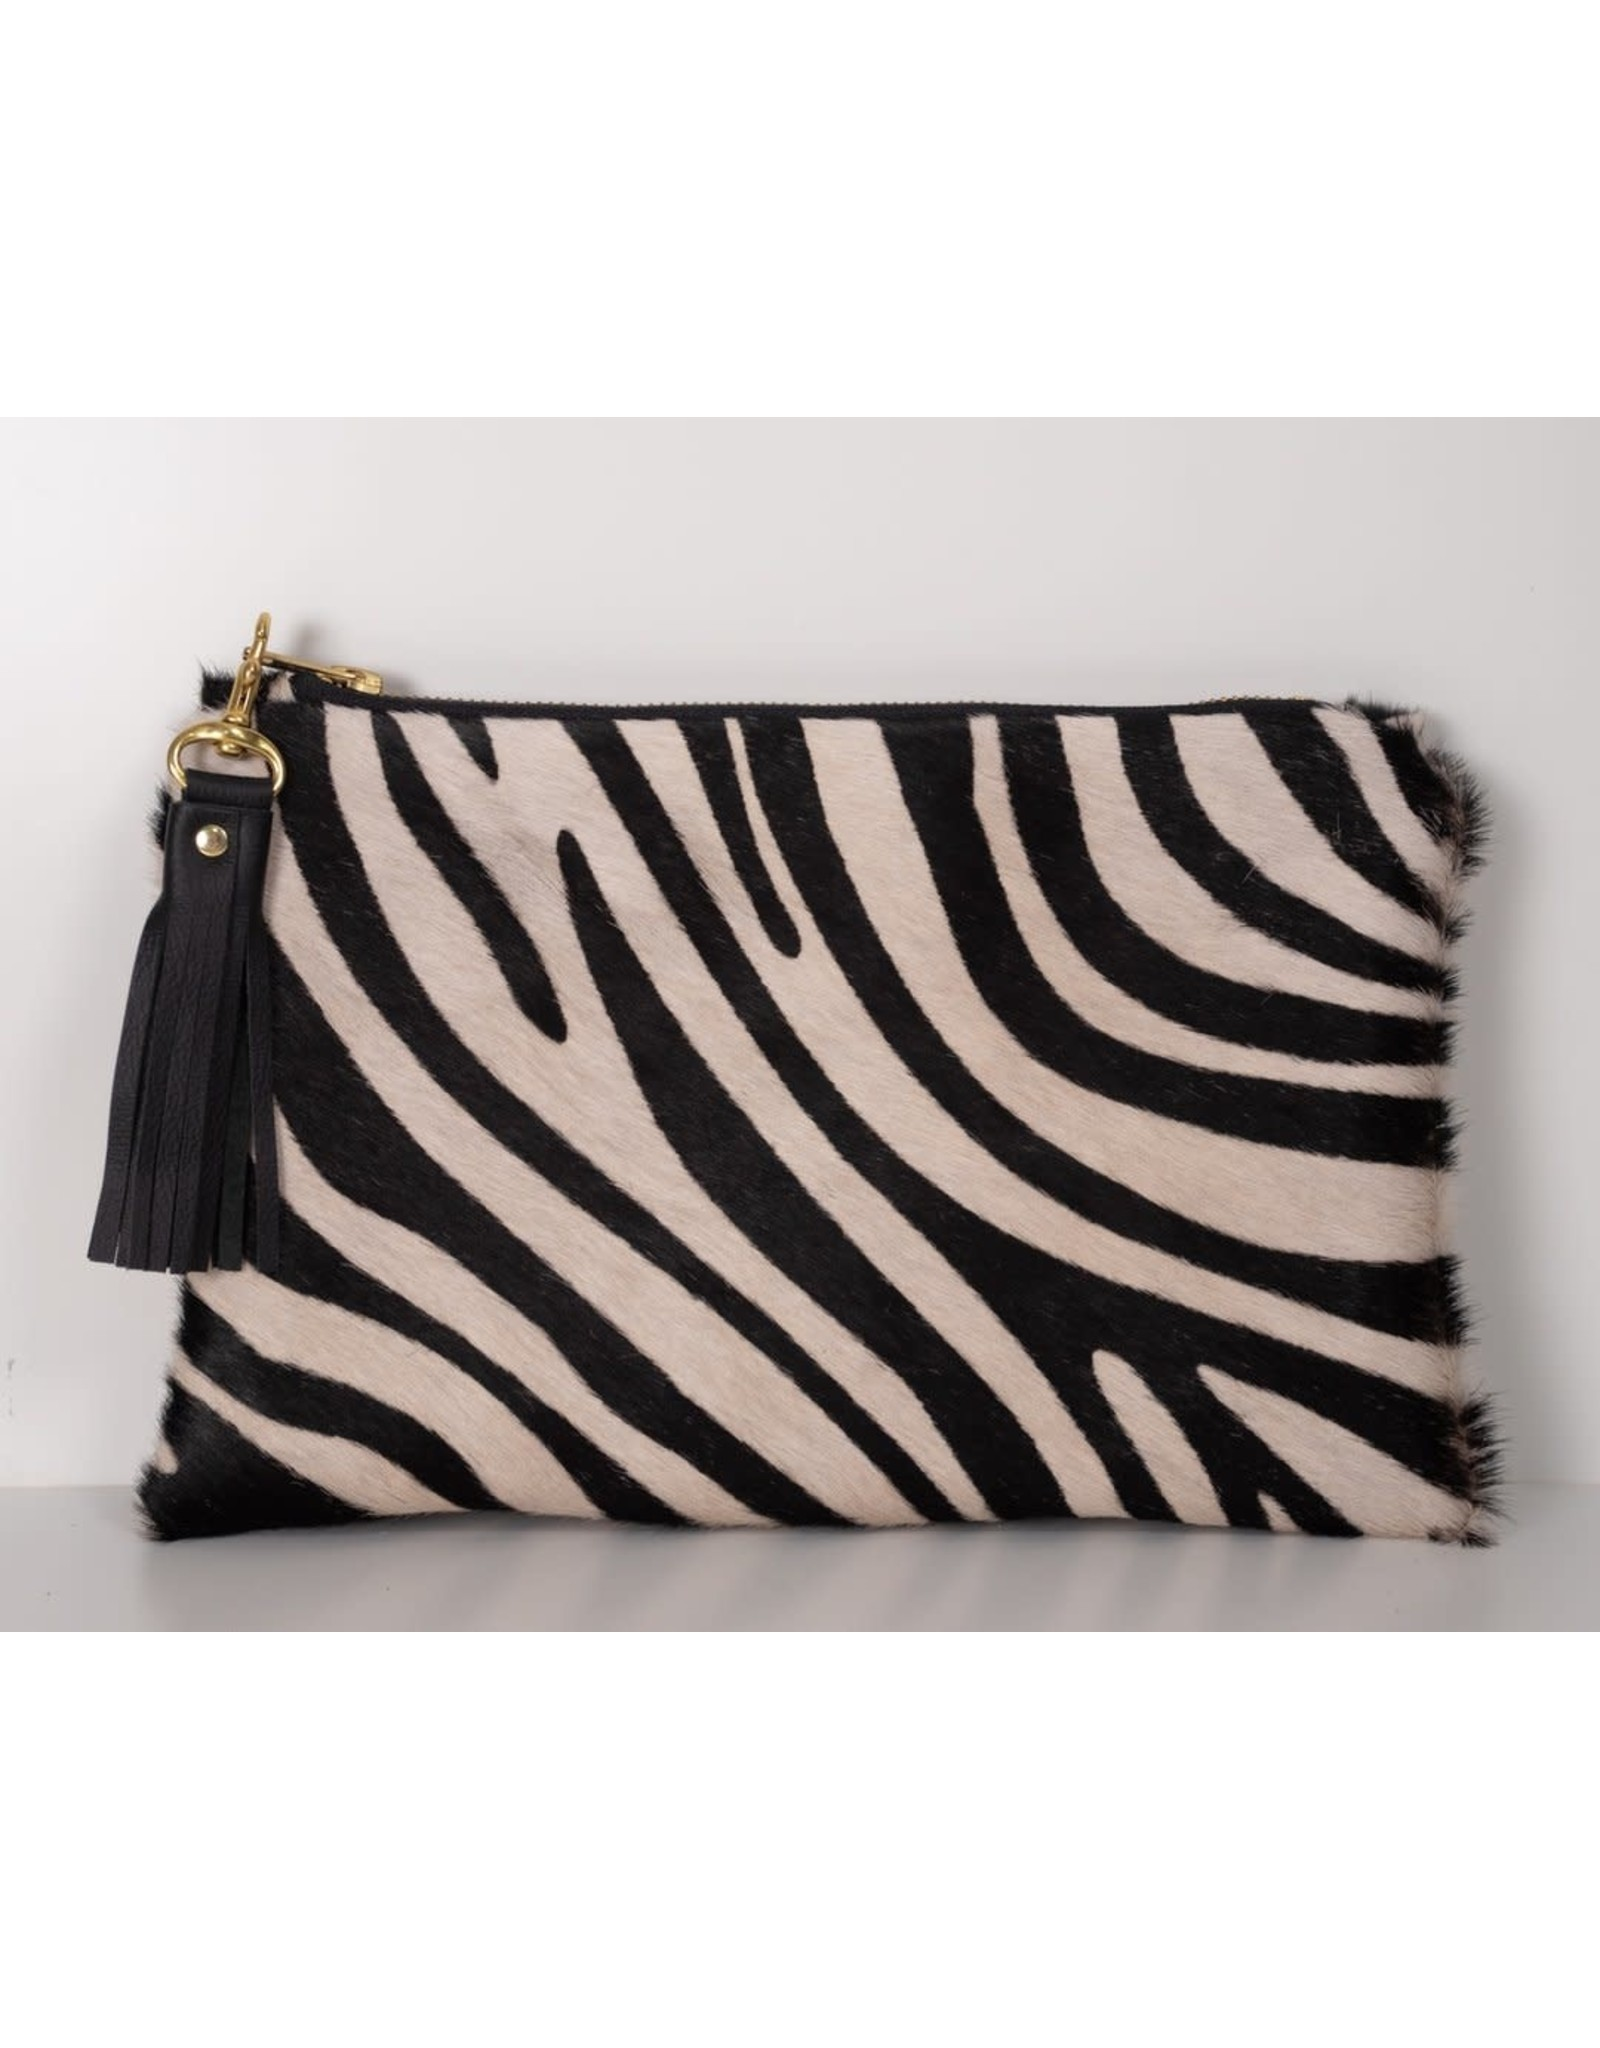 Eloise Hair on Hide Clutch : Zebra Print Cowhide